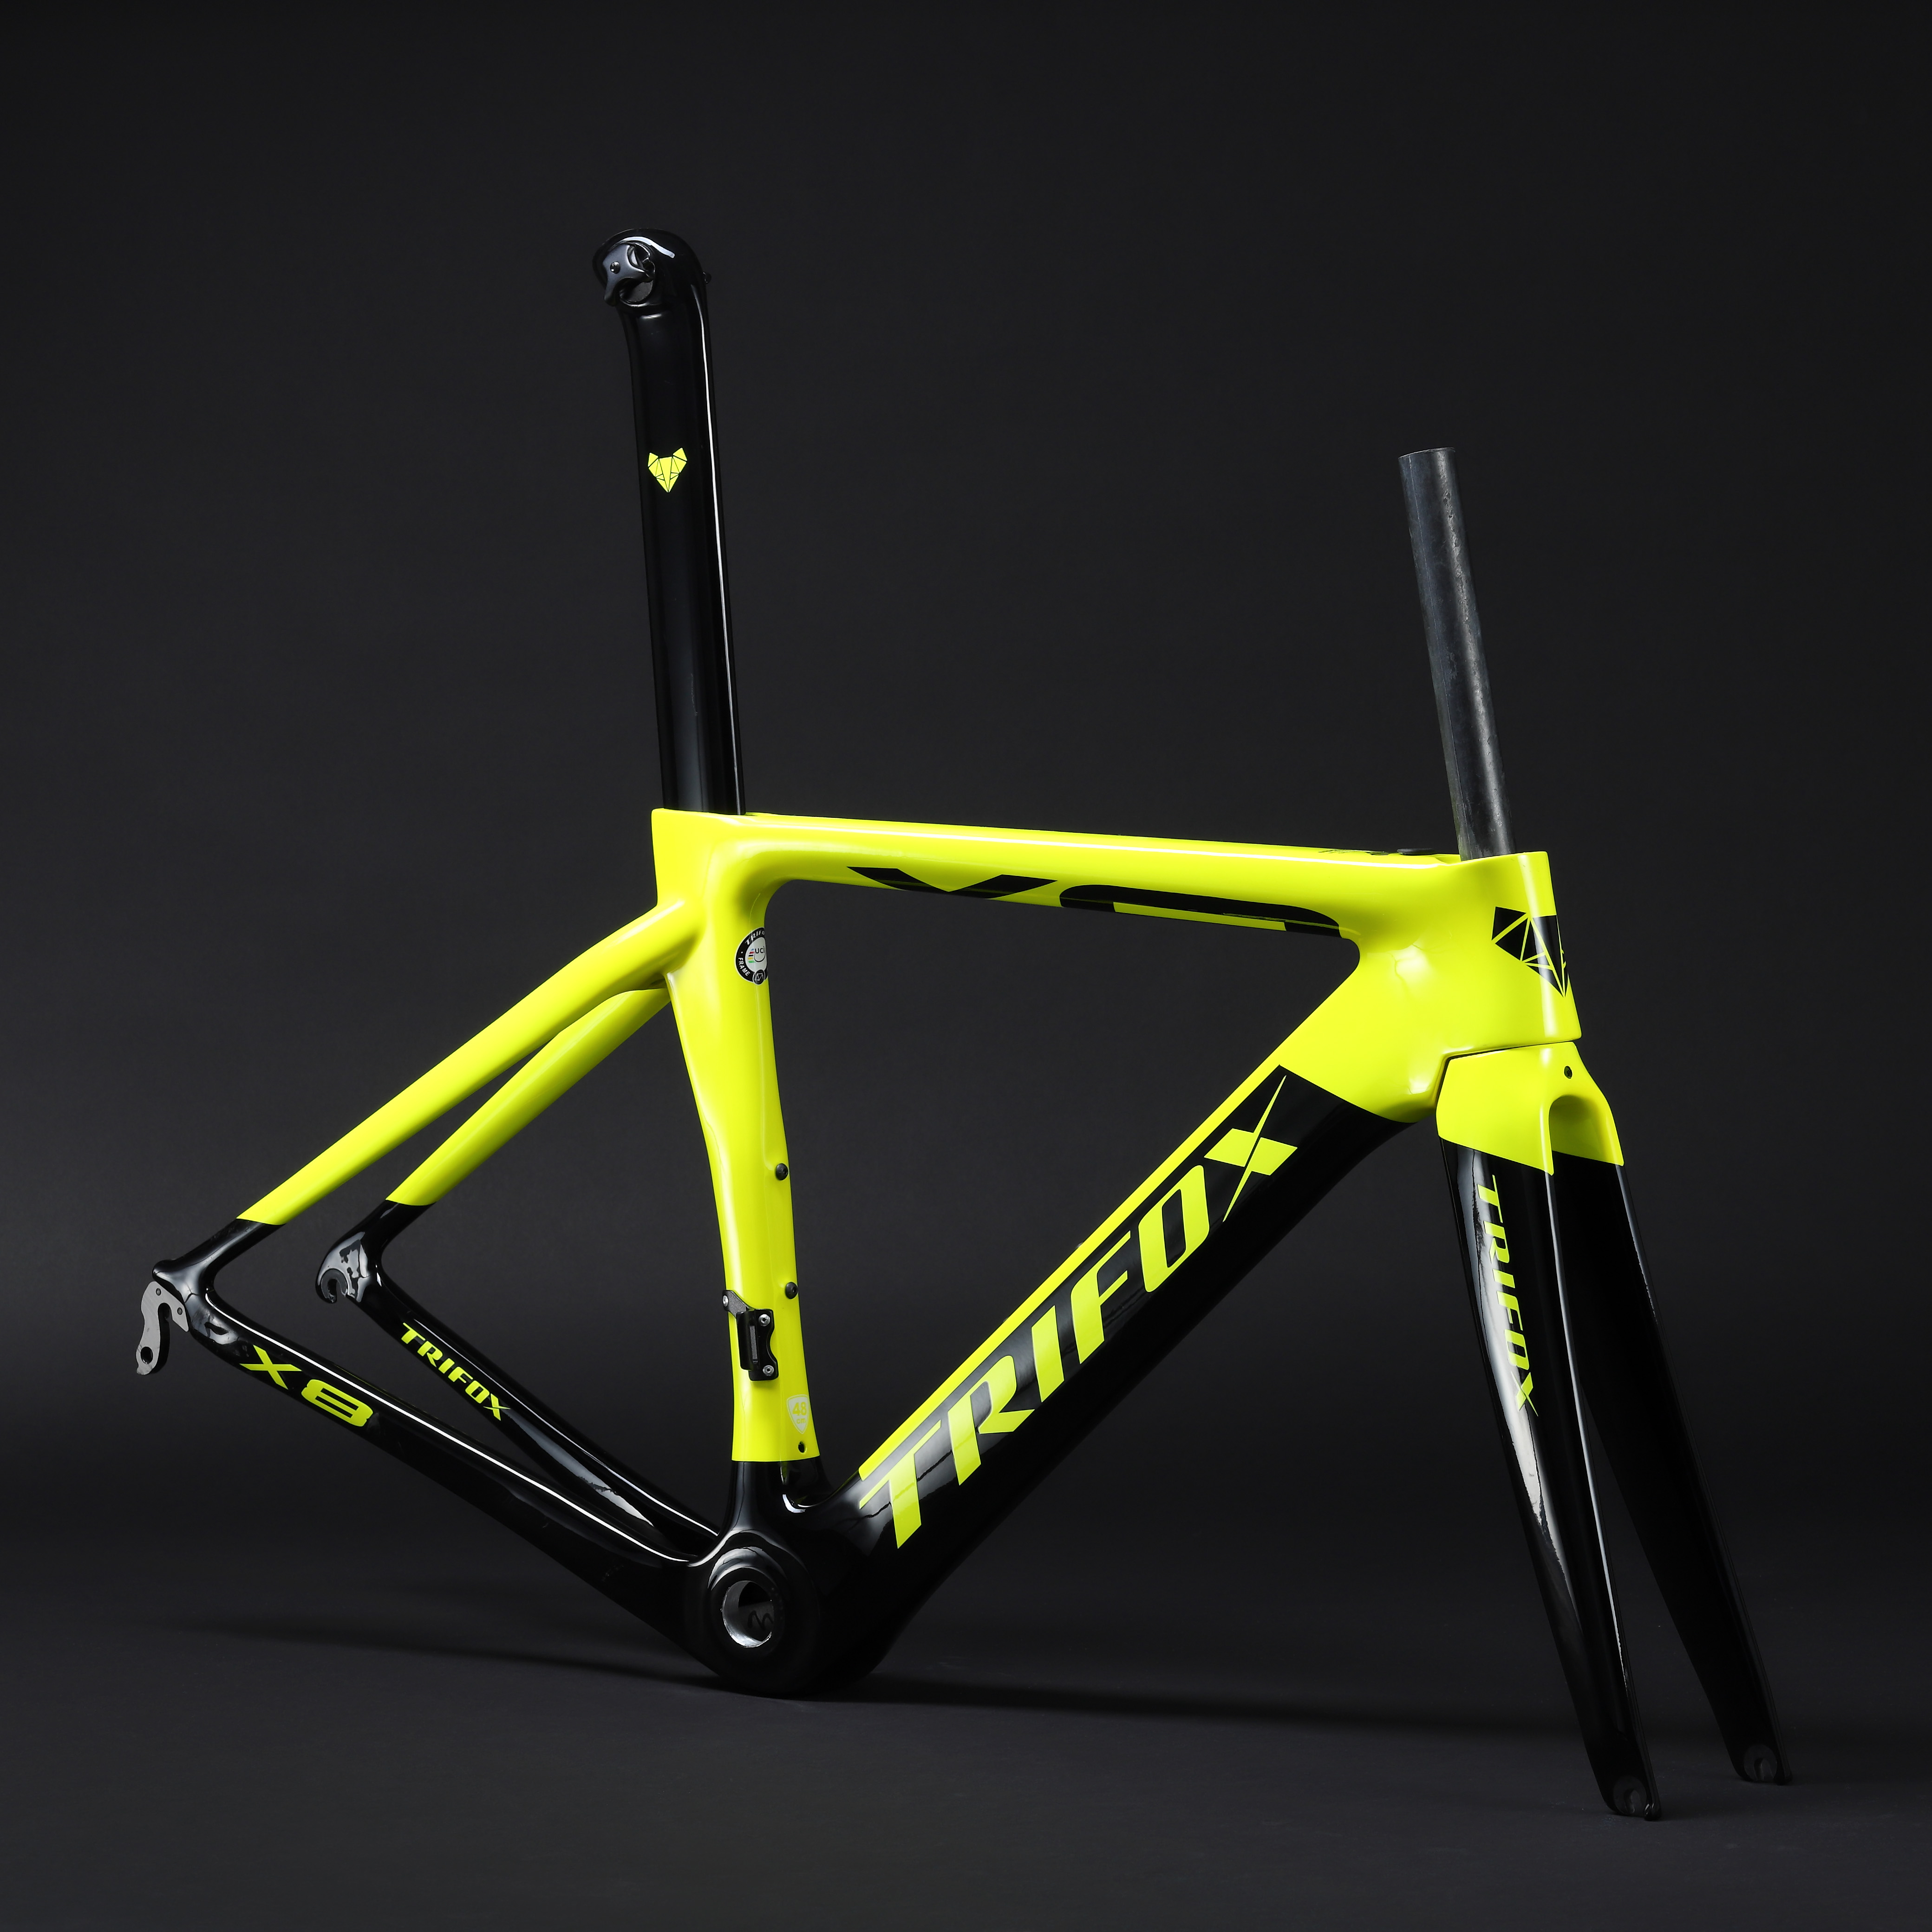 TRIFOX Carbon-Road-Frame Mechanical V-Brake Aero T800 Di2 title=